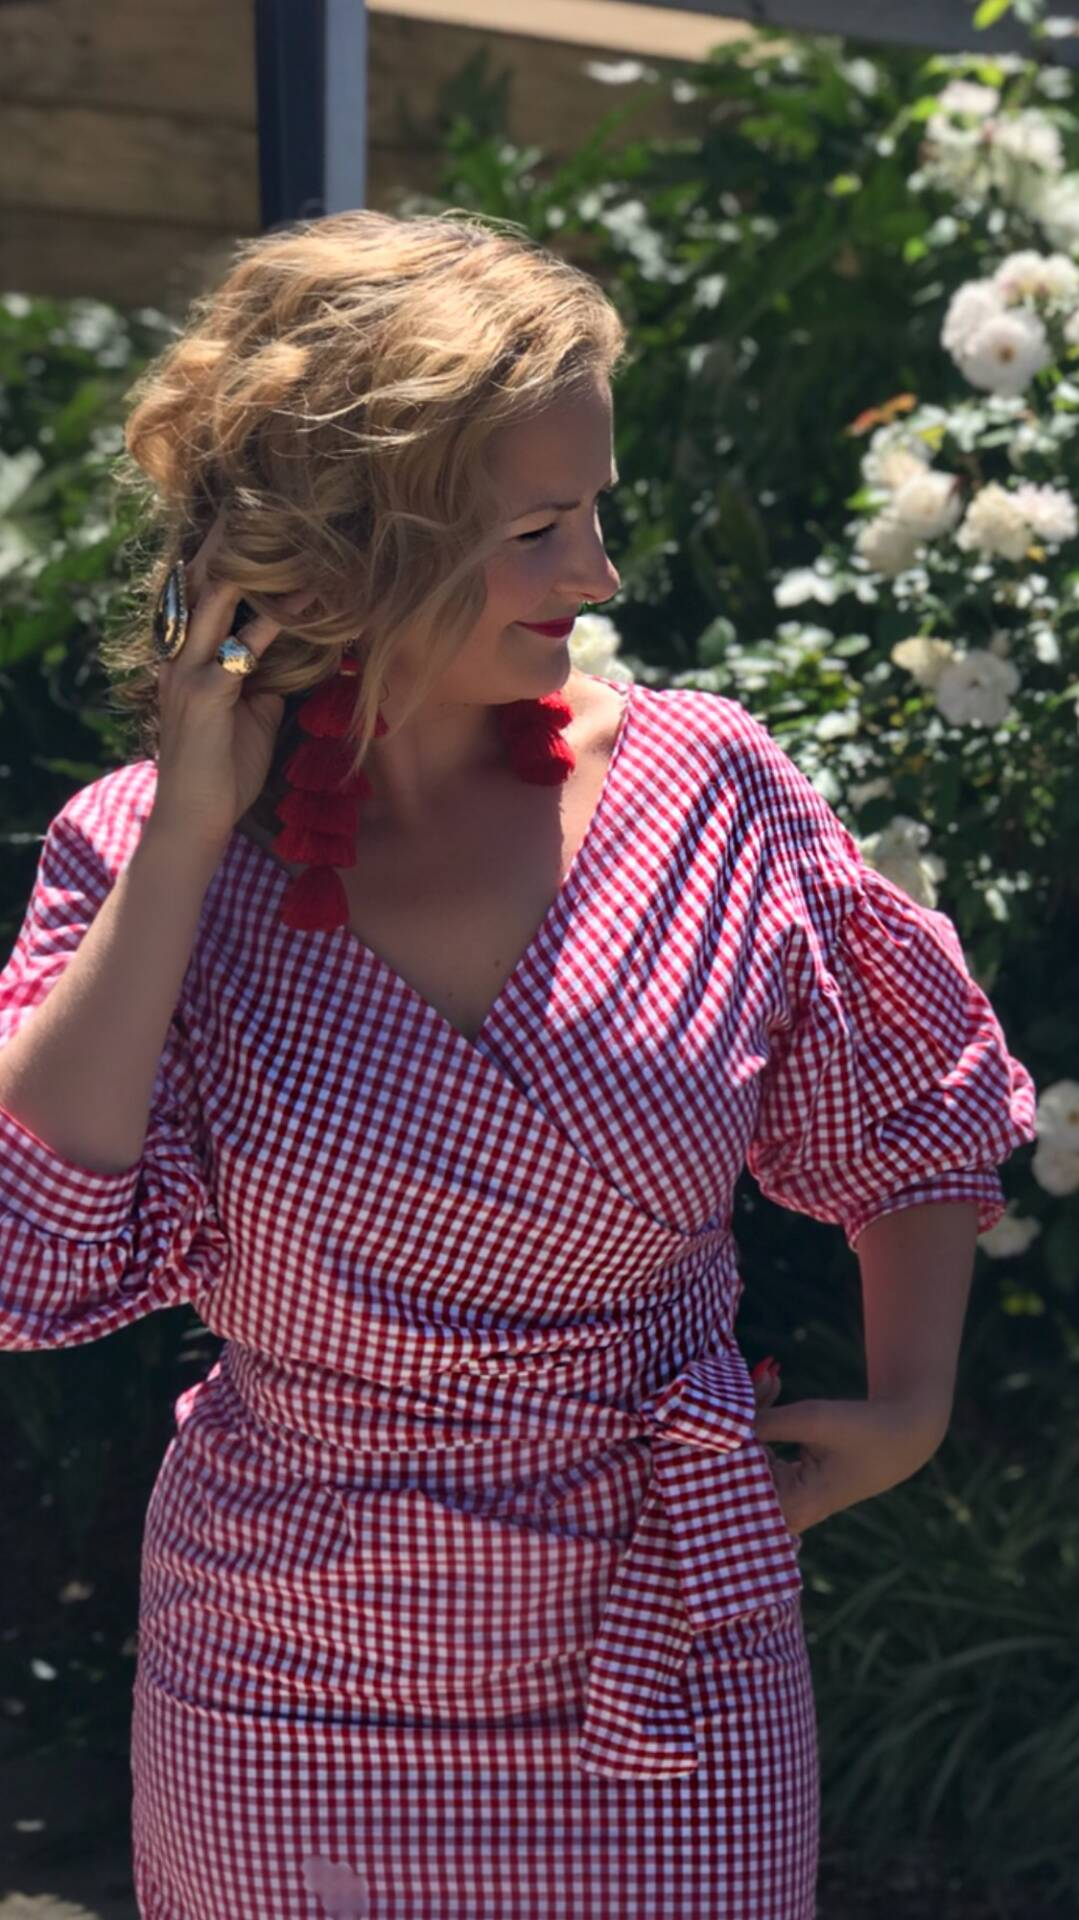 Summer Style - Ruffles, Check and Red